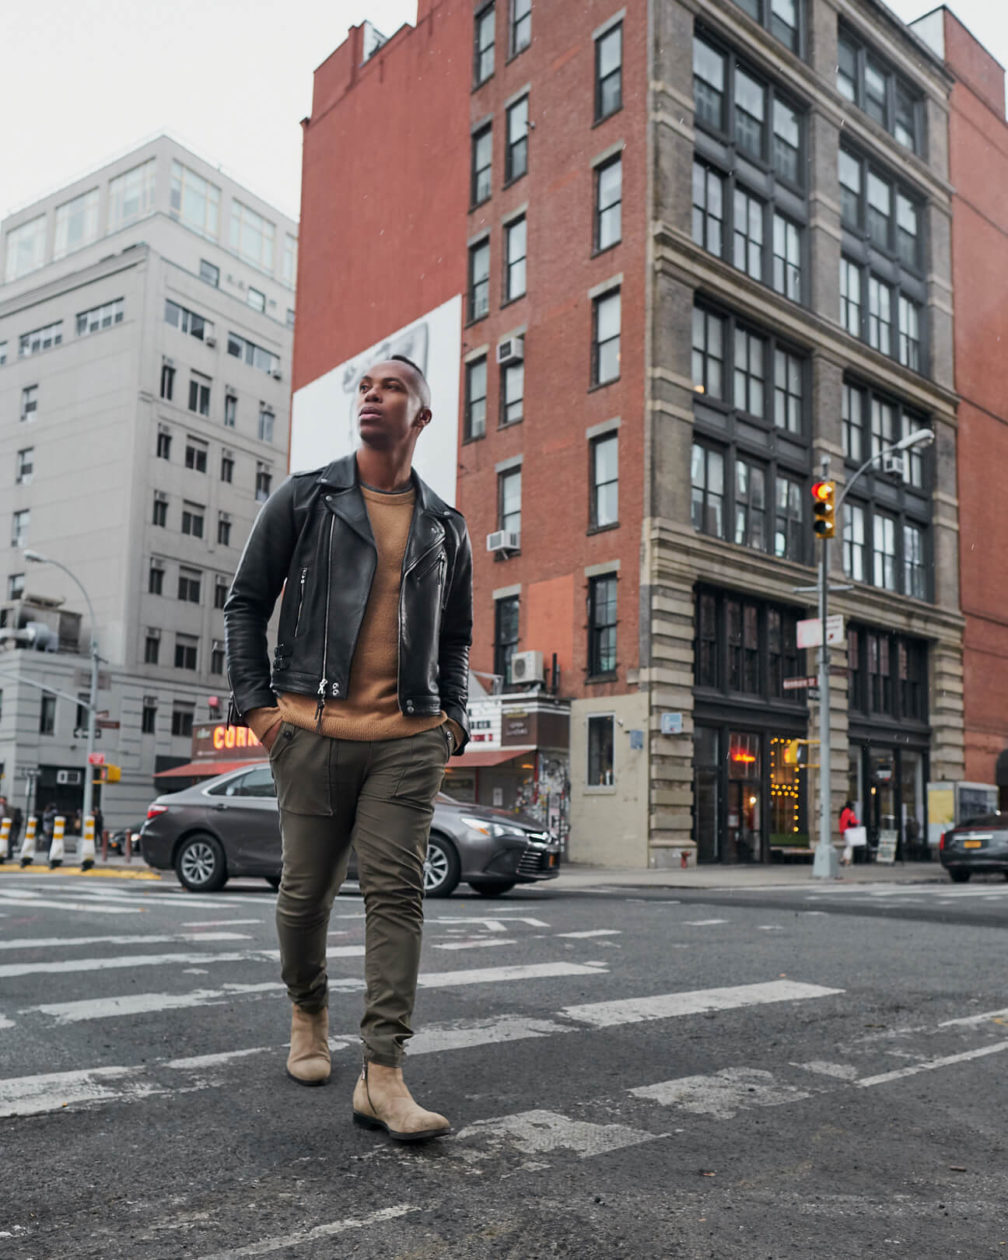 Fuji X Pro2 with xf 16mm f1.4 -Frank and Oak Men's Fashion Photography in SoHo New York walking across the street - Model: Rashad